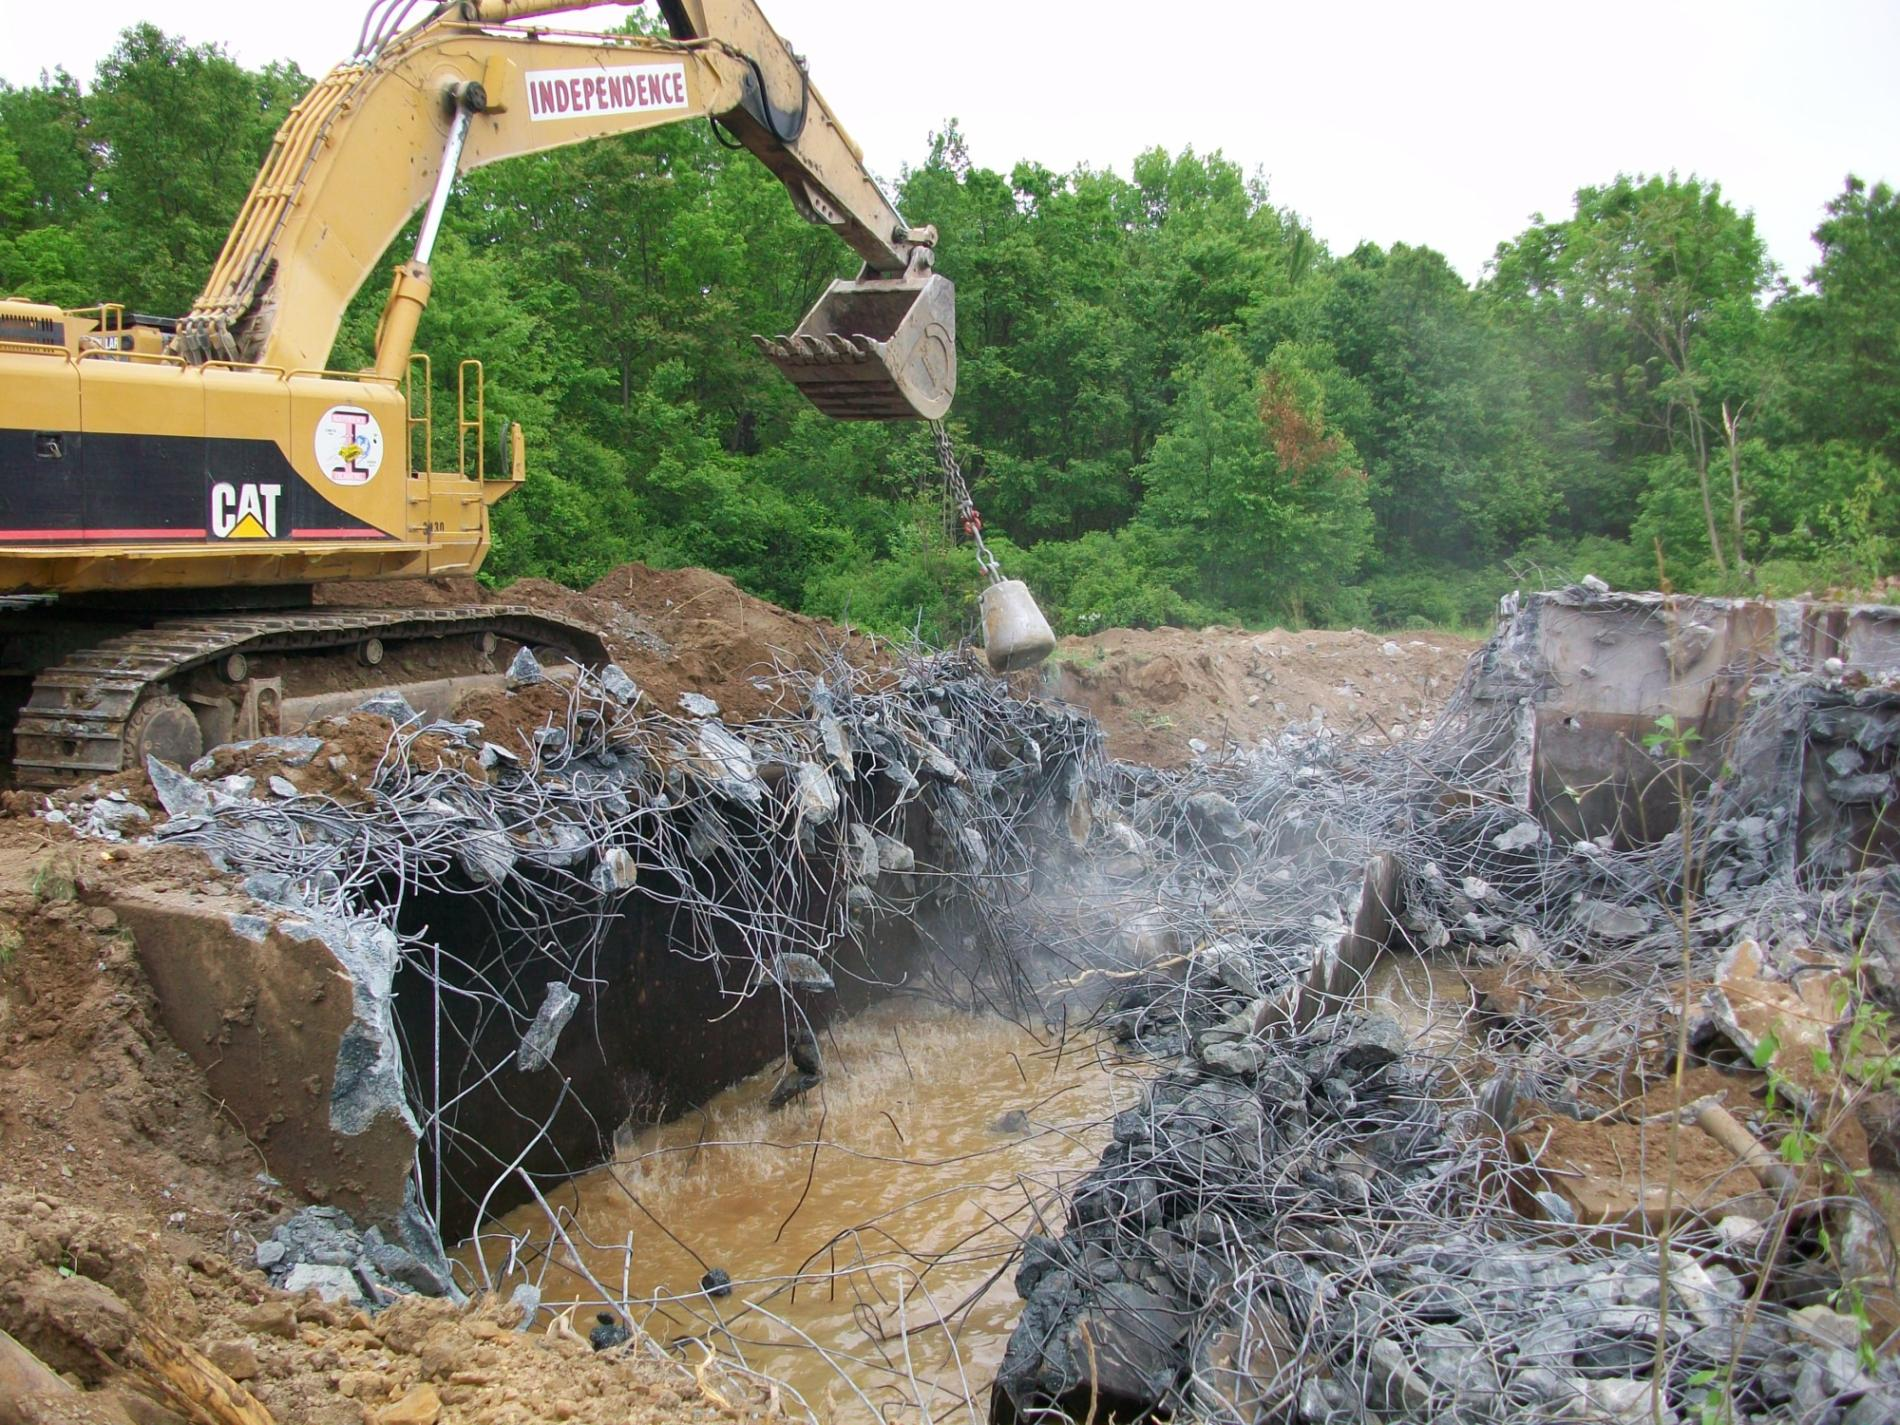 Concrete Crushing/Recycling - Independence Demolition